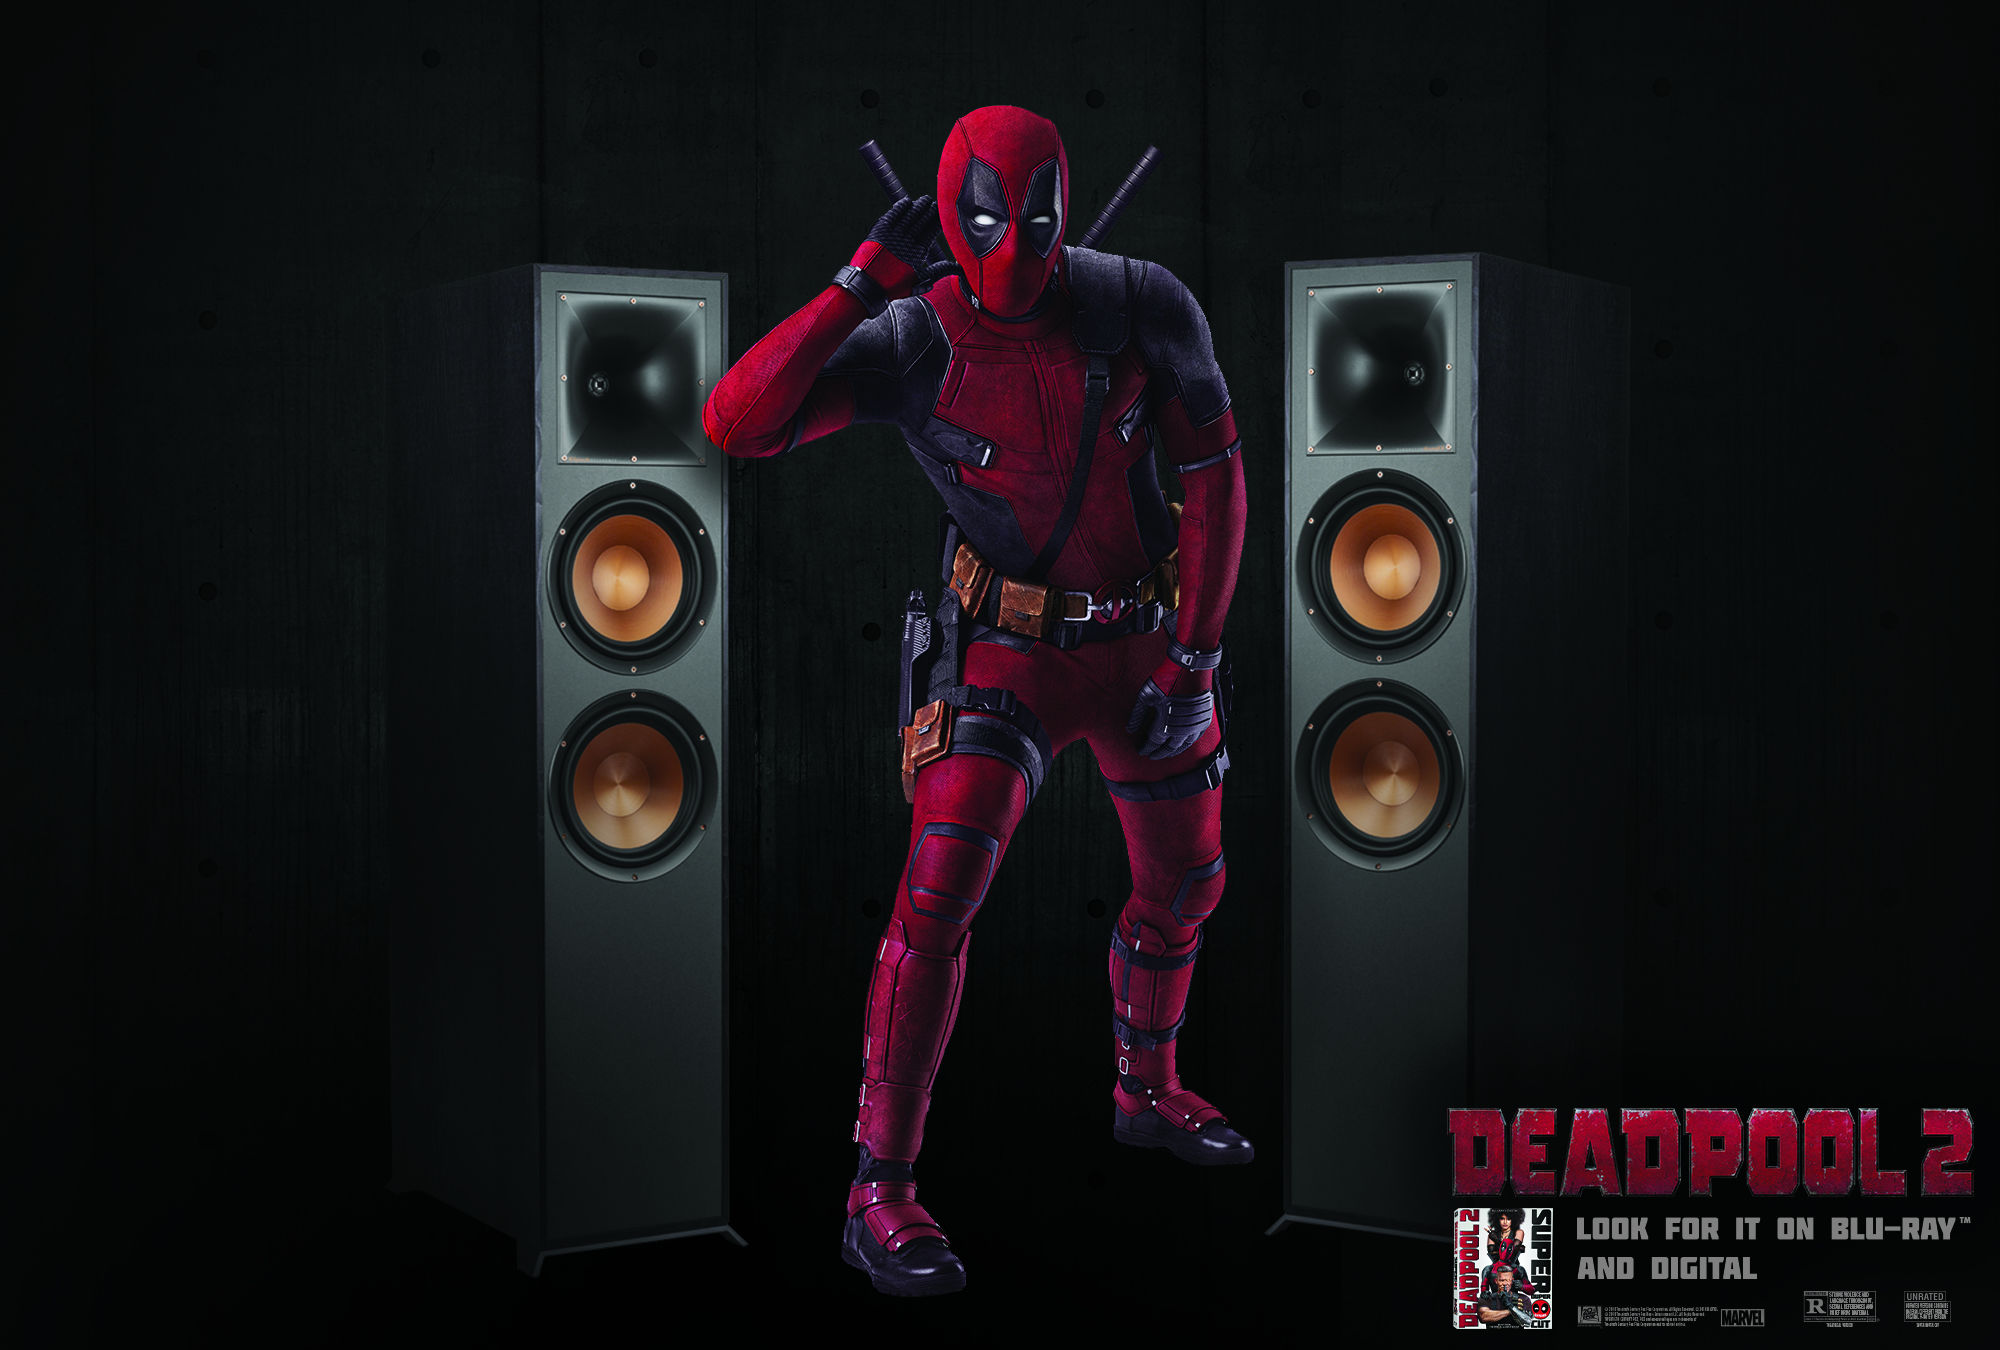 B Deadpool 2 Sound